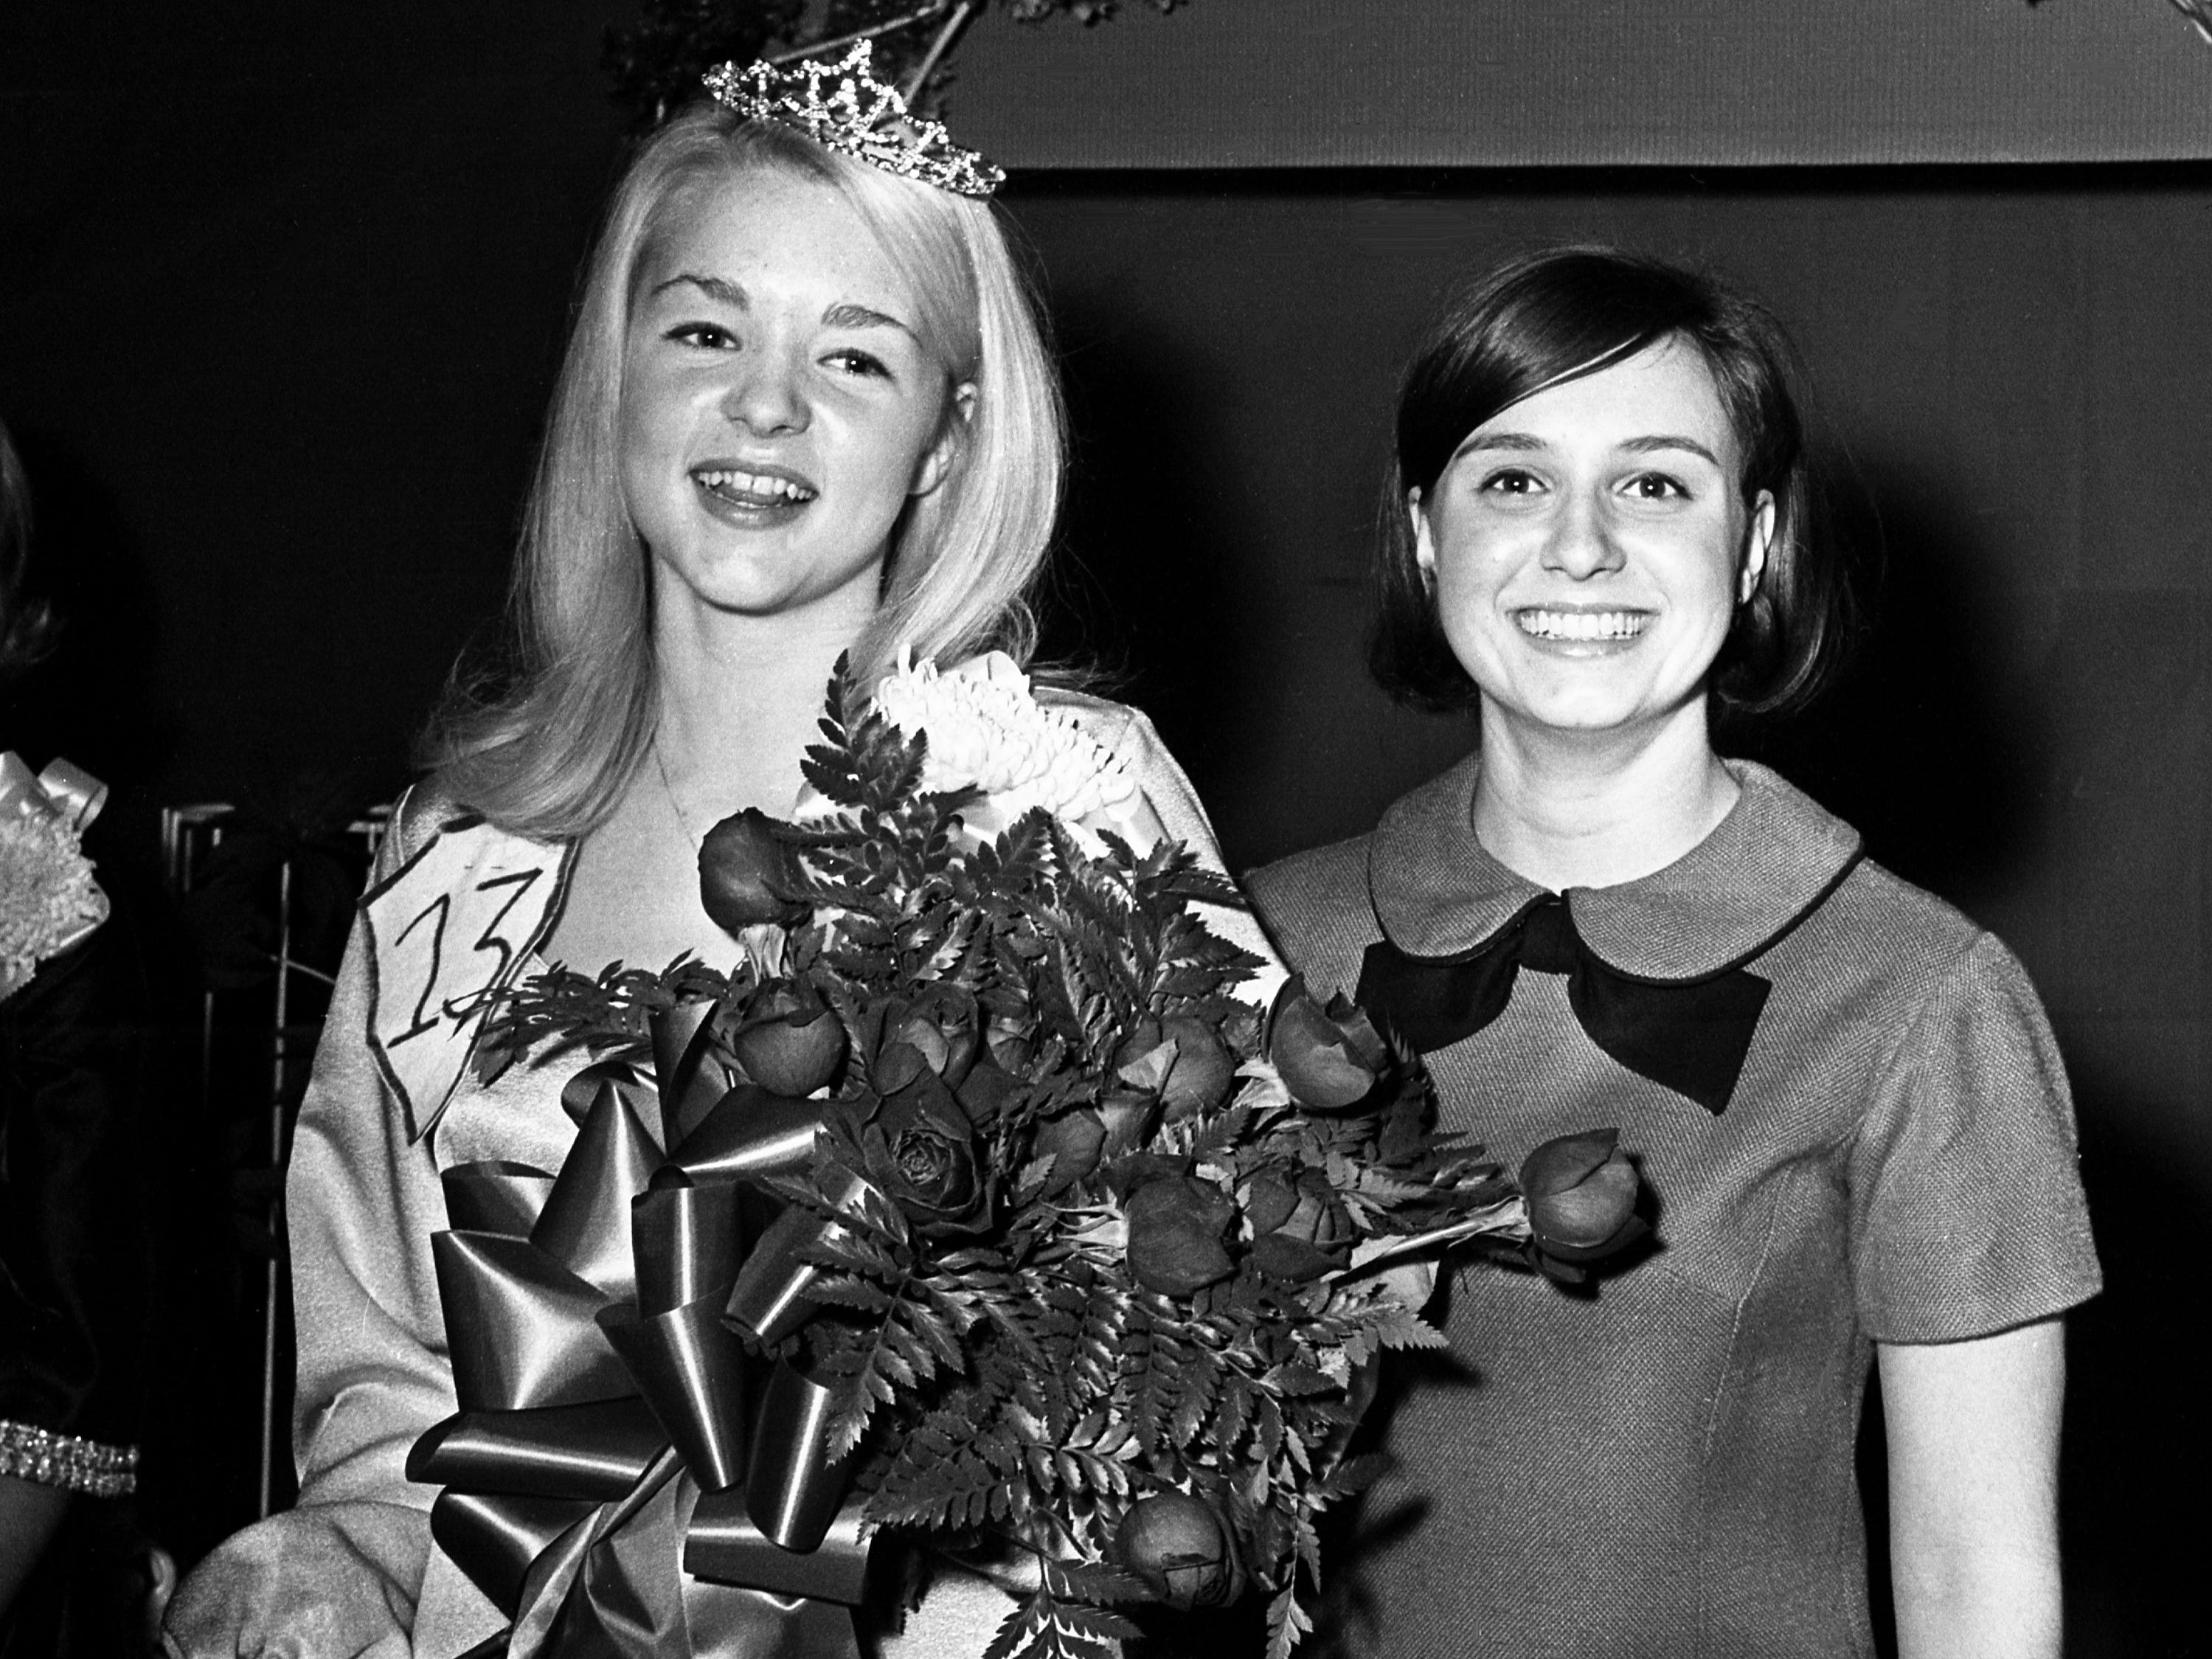 Crowned Woodbine Jaycee Club Christmas Queen Gloria Neese, left, of Nashville, smiles with delight Nov. 2, 1968. She is accompanied by last year's queen, Alicia White. Neese, 16, will participate in the Woodbine Christmas parade Dec. 1.